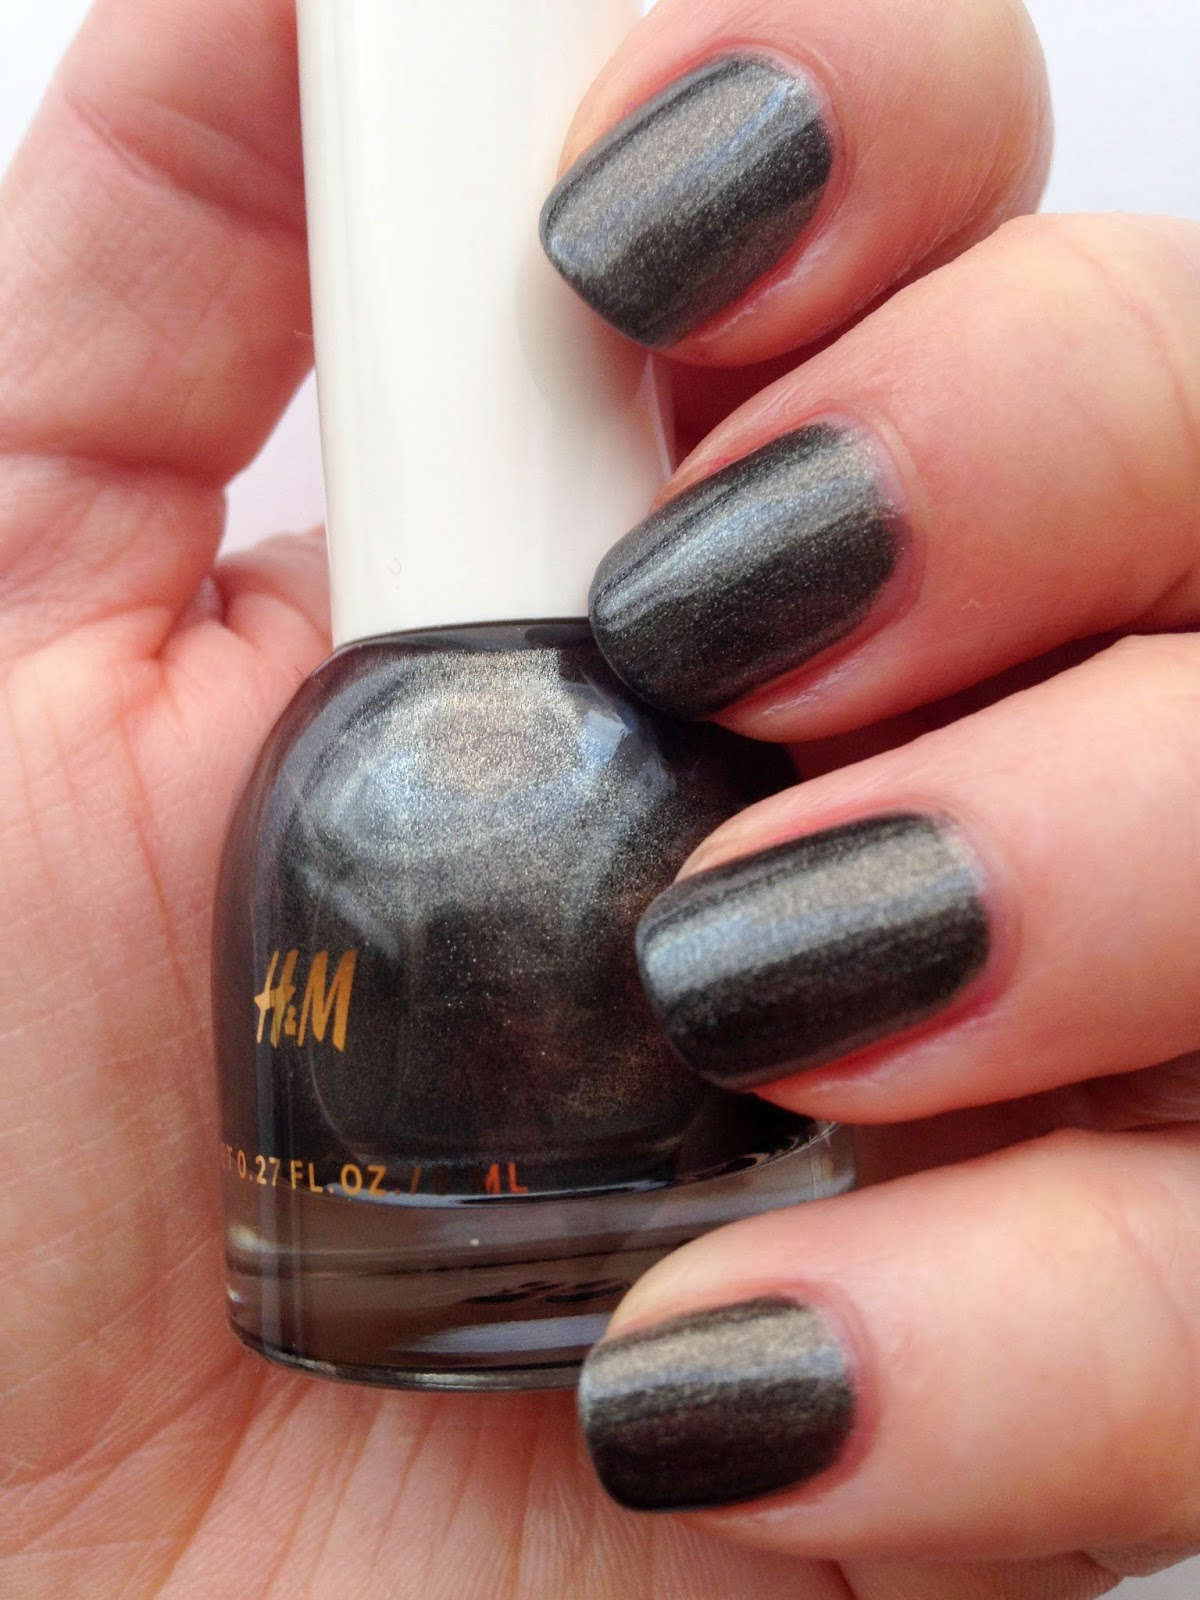 NOTD: H&M nail polish in Mercurial Me | Wrinkles And Heels